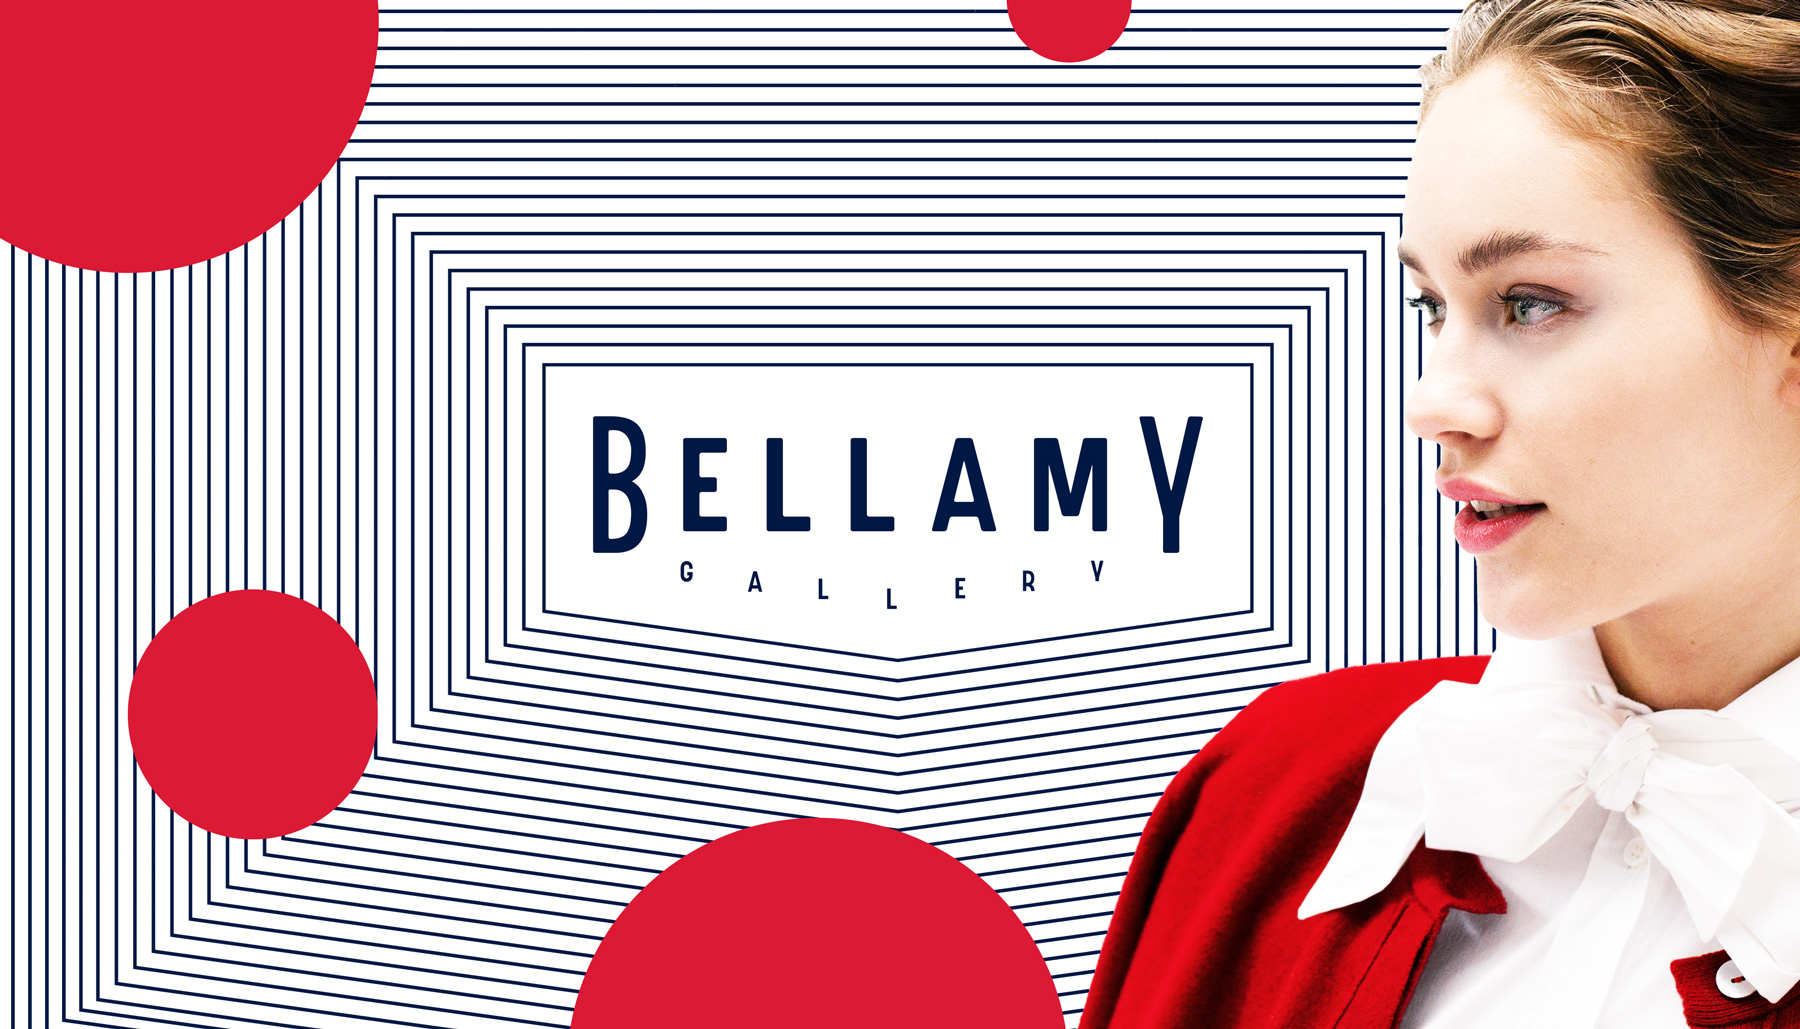 Bellamy Gallery / Dutchy Design / Branding & Design Portfolio